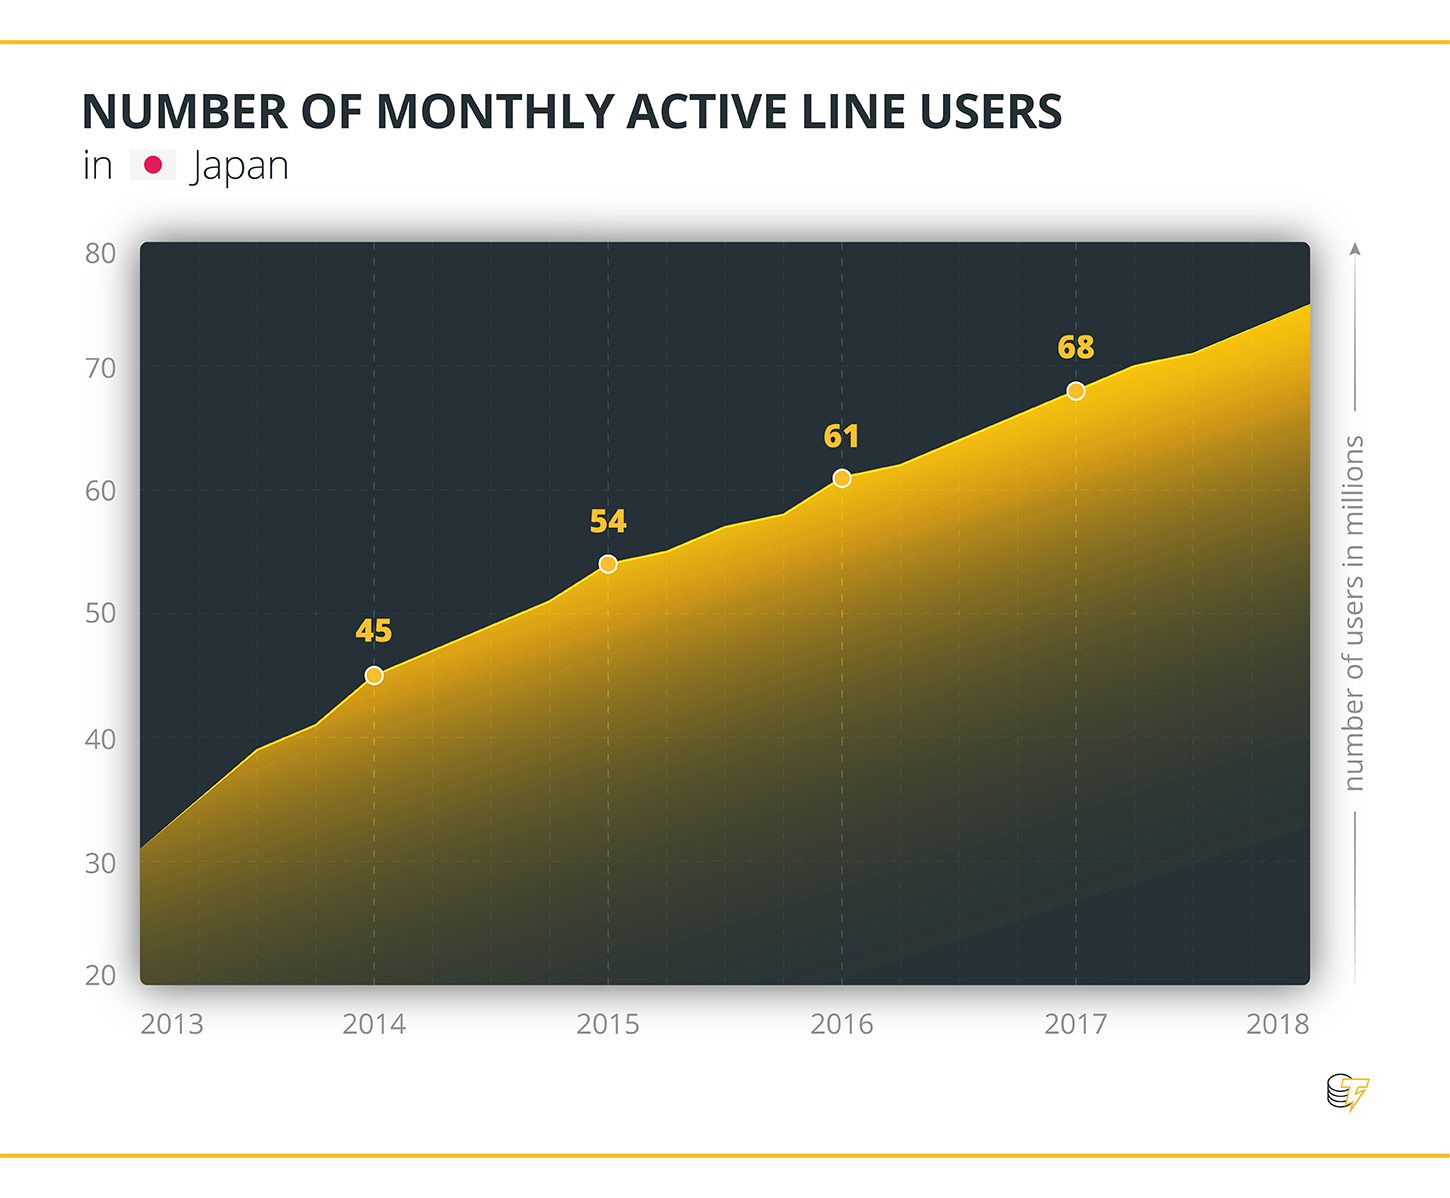 NUMBER OF MONTHLY ACTIVE LINE USERS